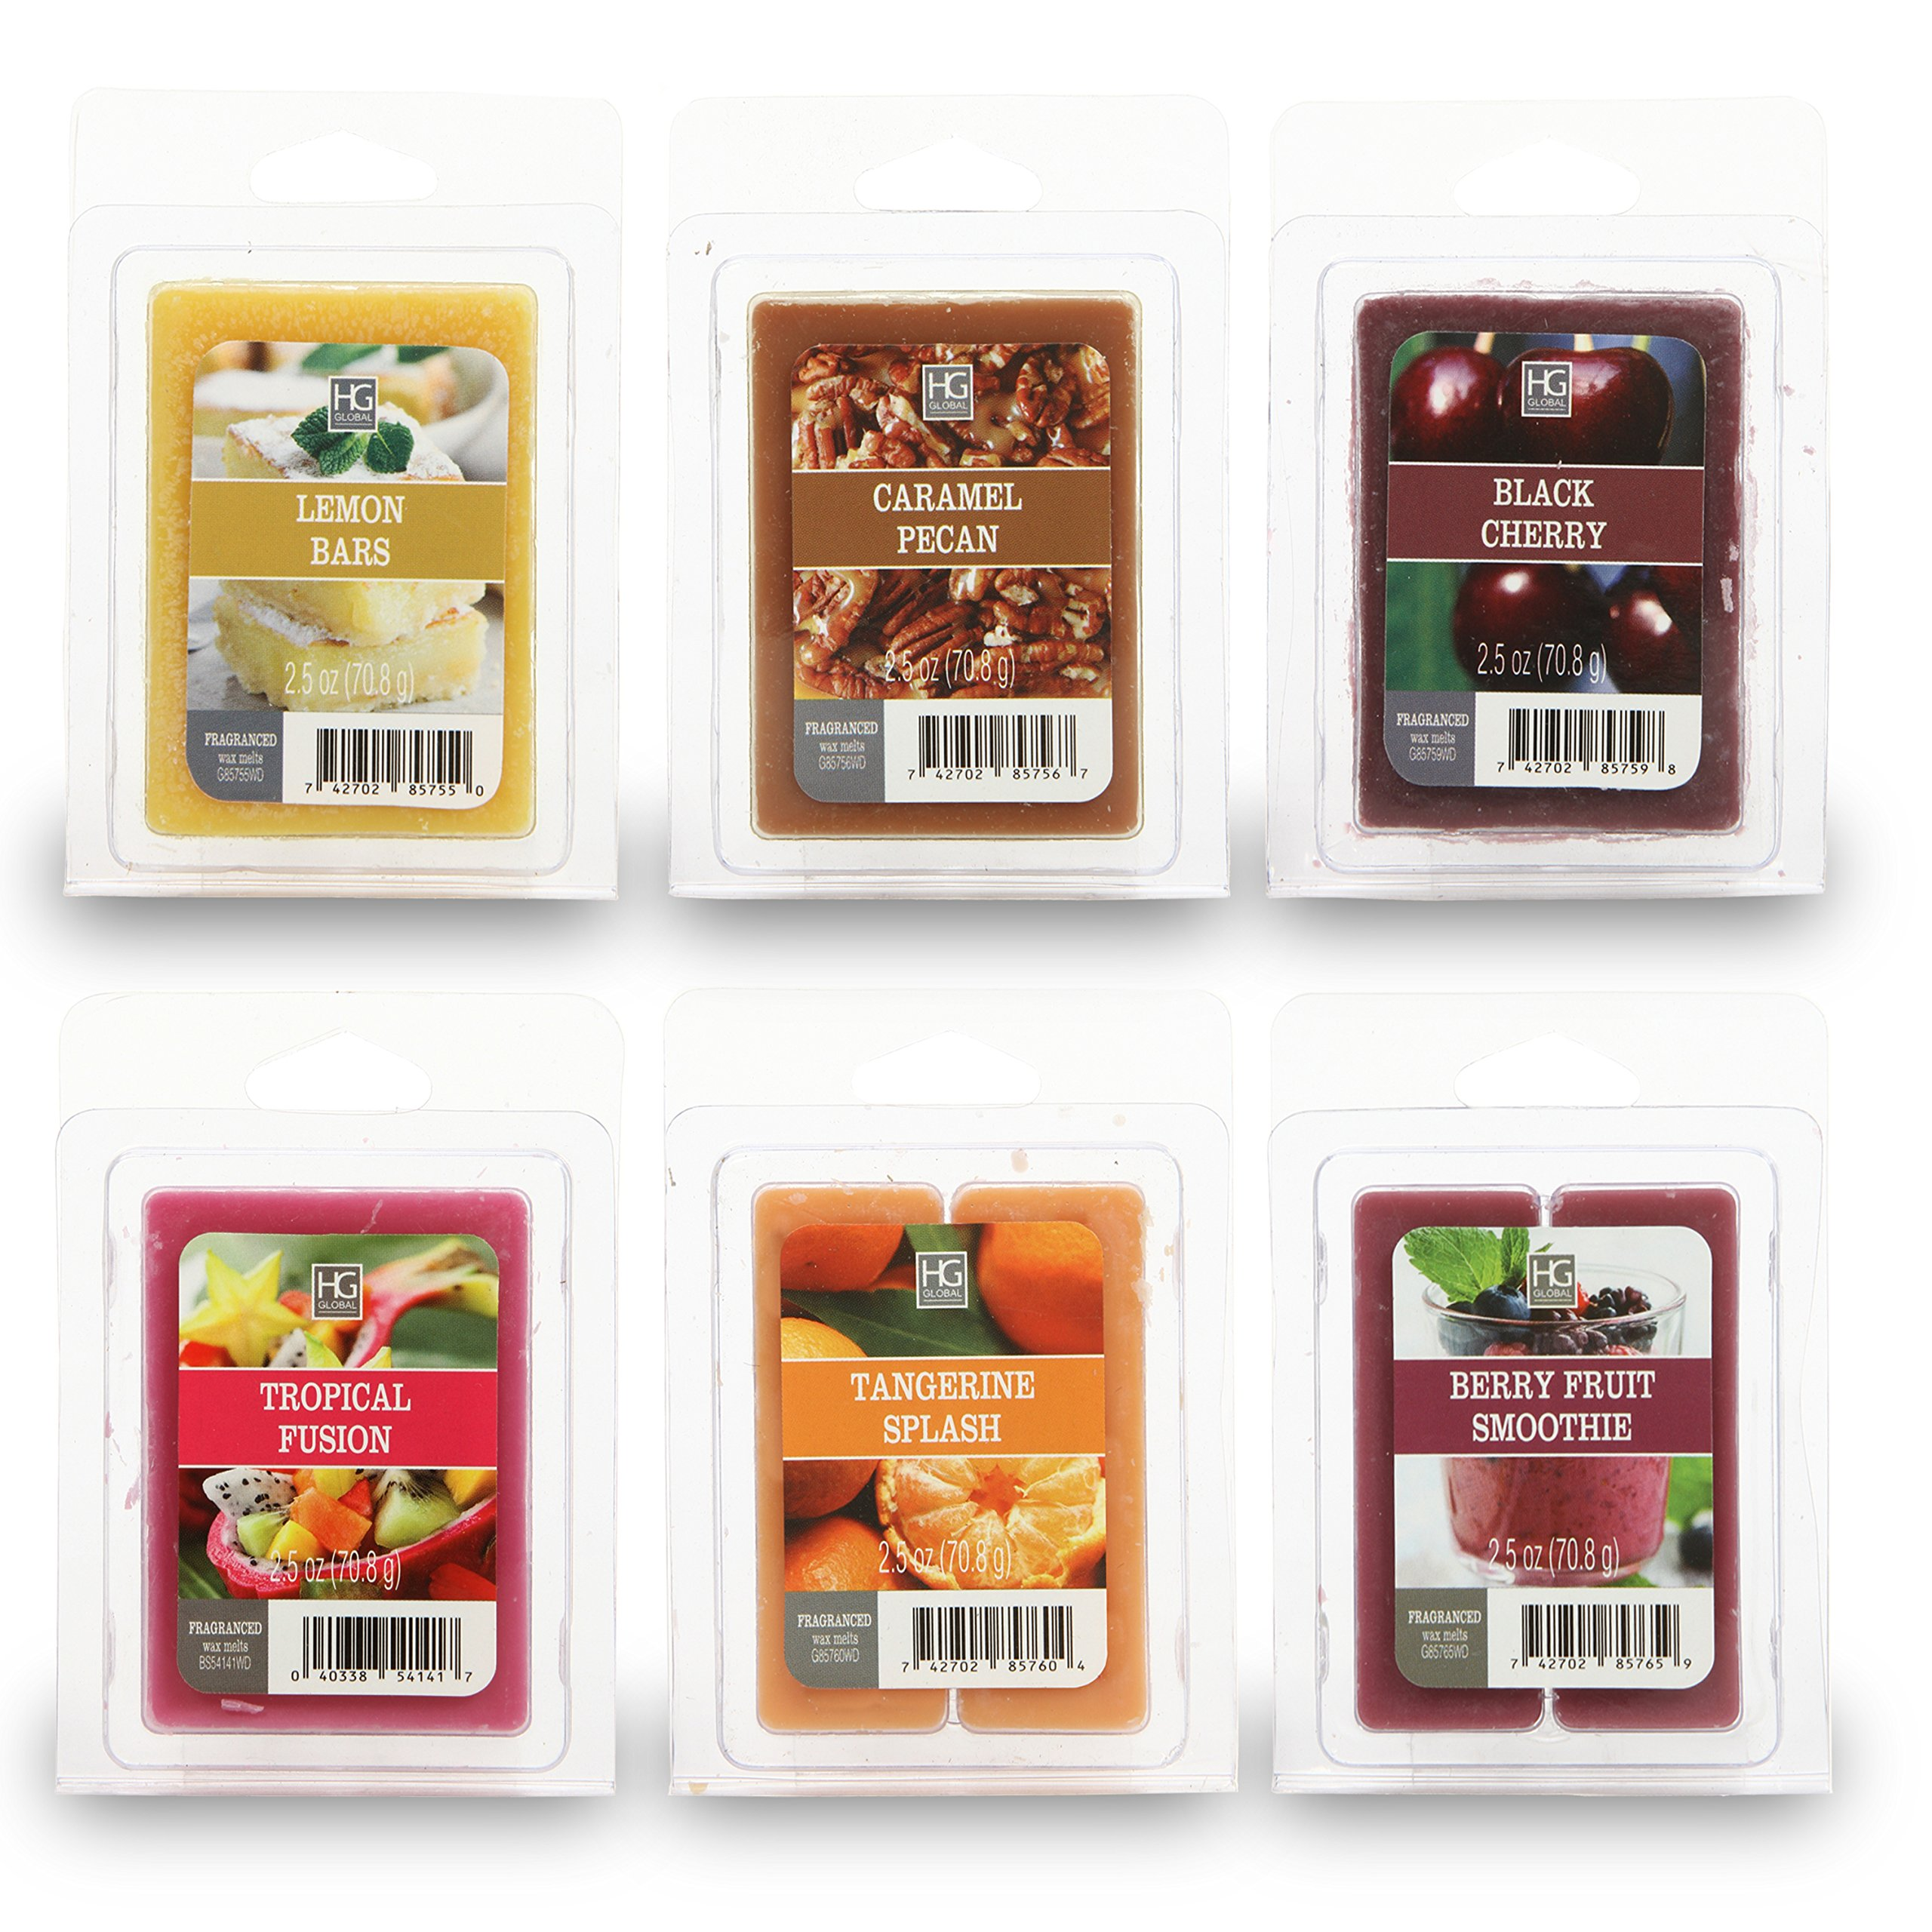 Hosley Set of 6 Assorted Wax Cubes/Melts - 2.5 oz Each. Tropical Fusion, Lemon Bars, Caramel Pecans, Black Cherry, Tangerine Splash, Fruit Smoothie. Infused with Essential Oils. Ideal Gift O5